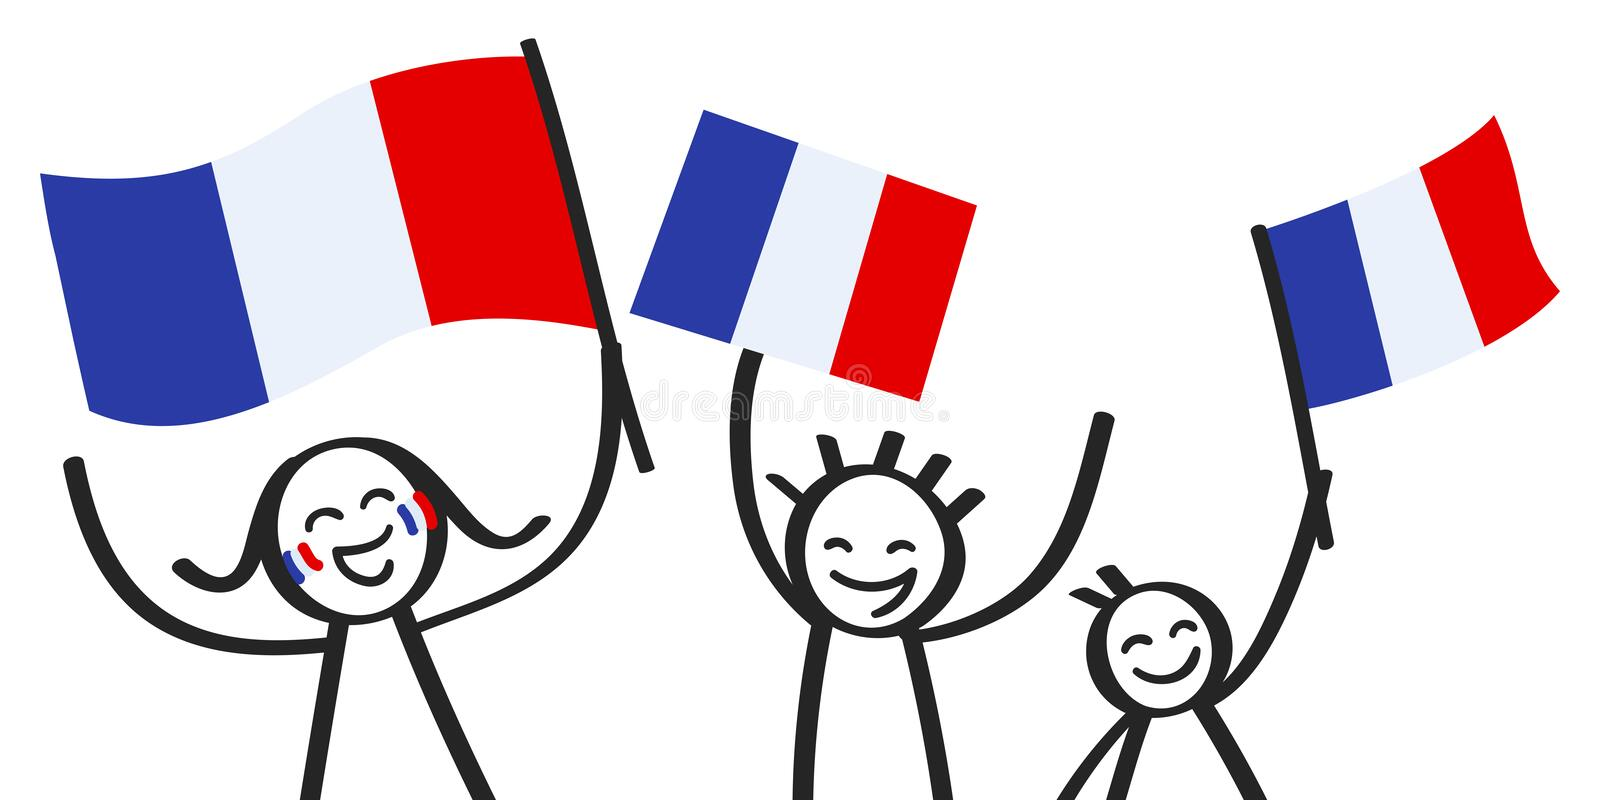 Cheering group of happy stick figures with French national flags, France supporters smiling and waving tricolor flags. Isolated on white background vector illustration